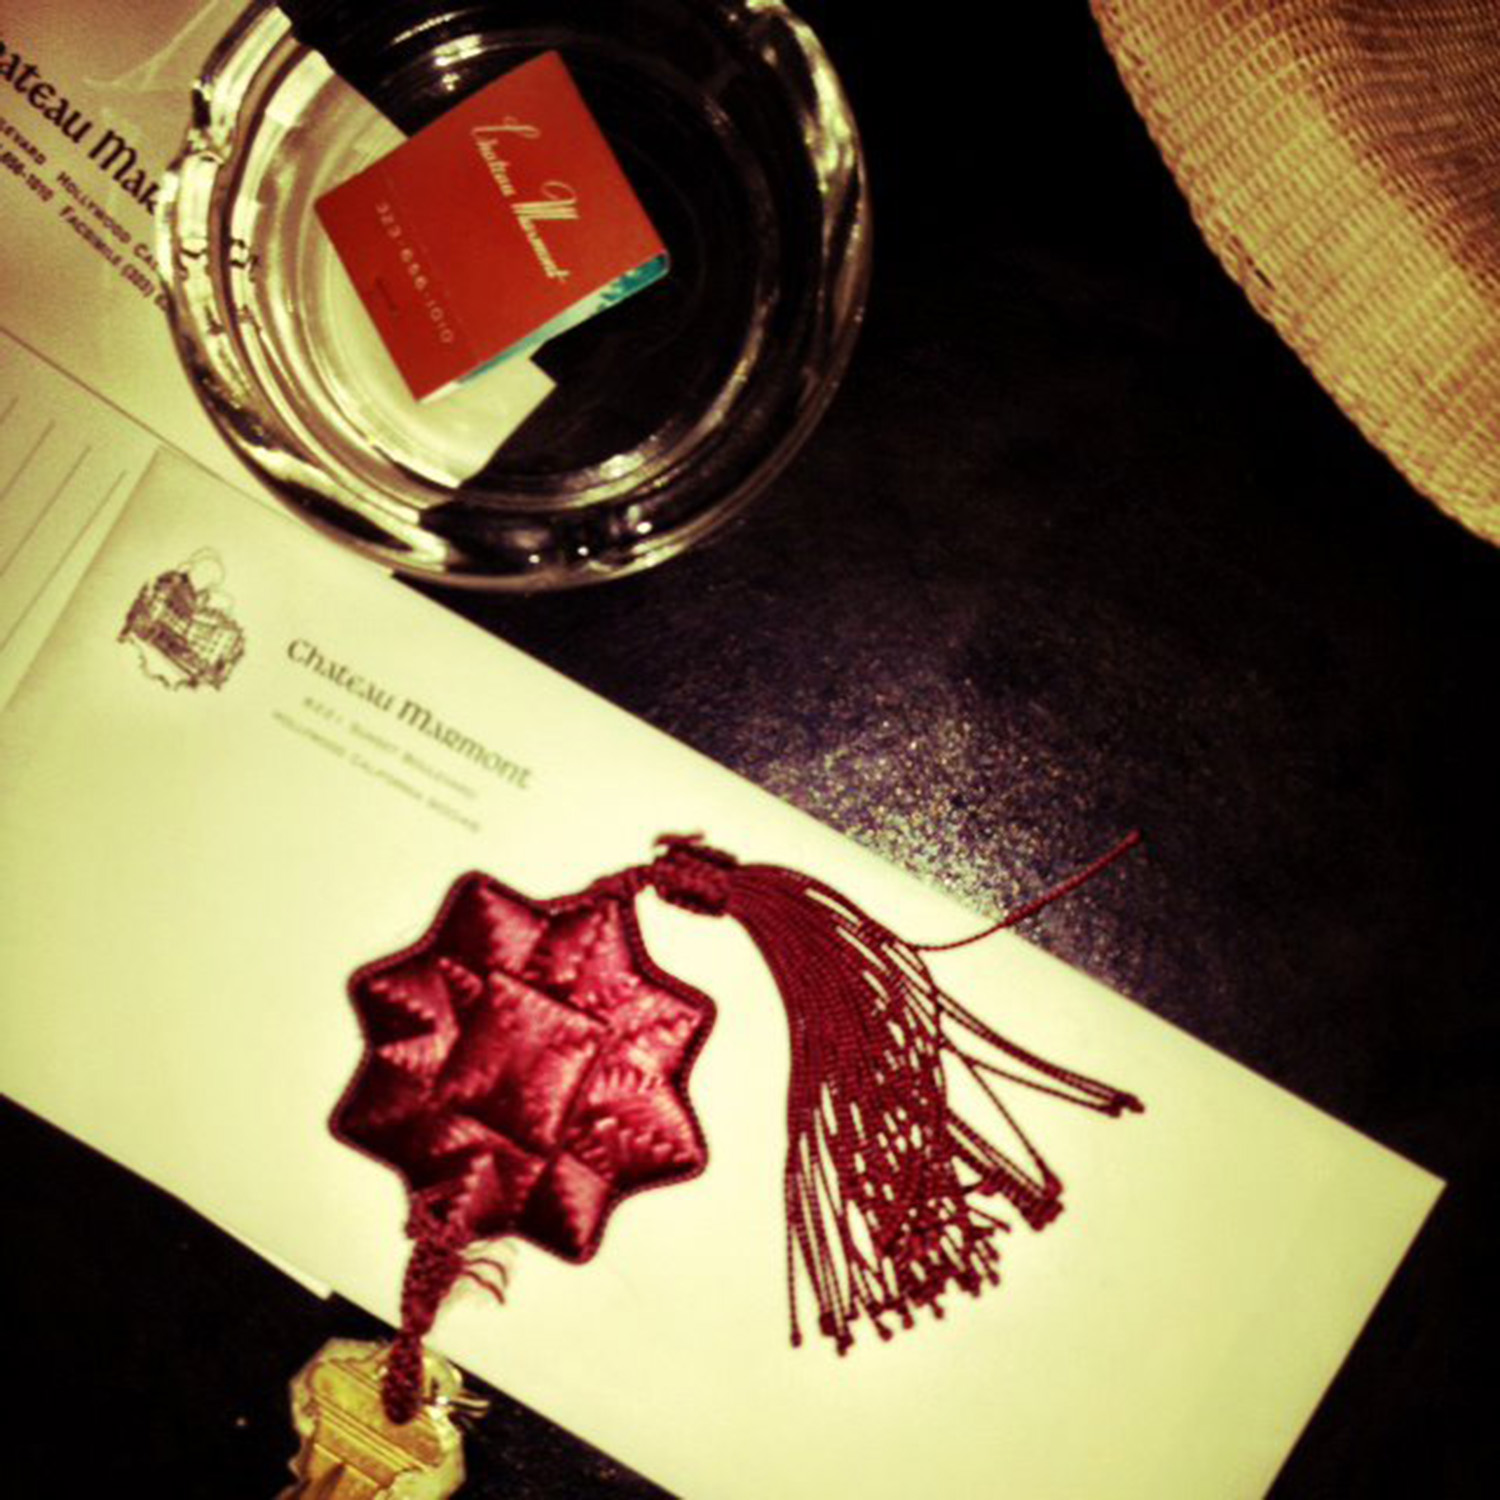 Room keys for The Chateau Marmont